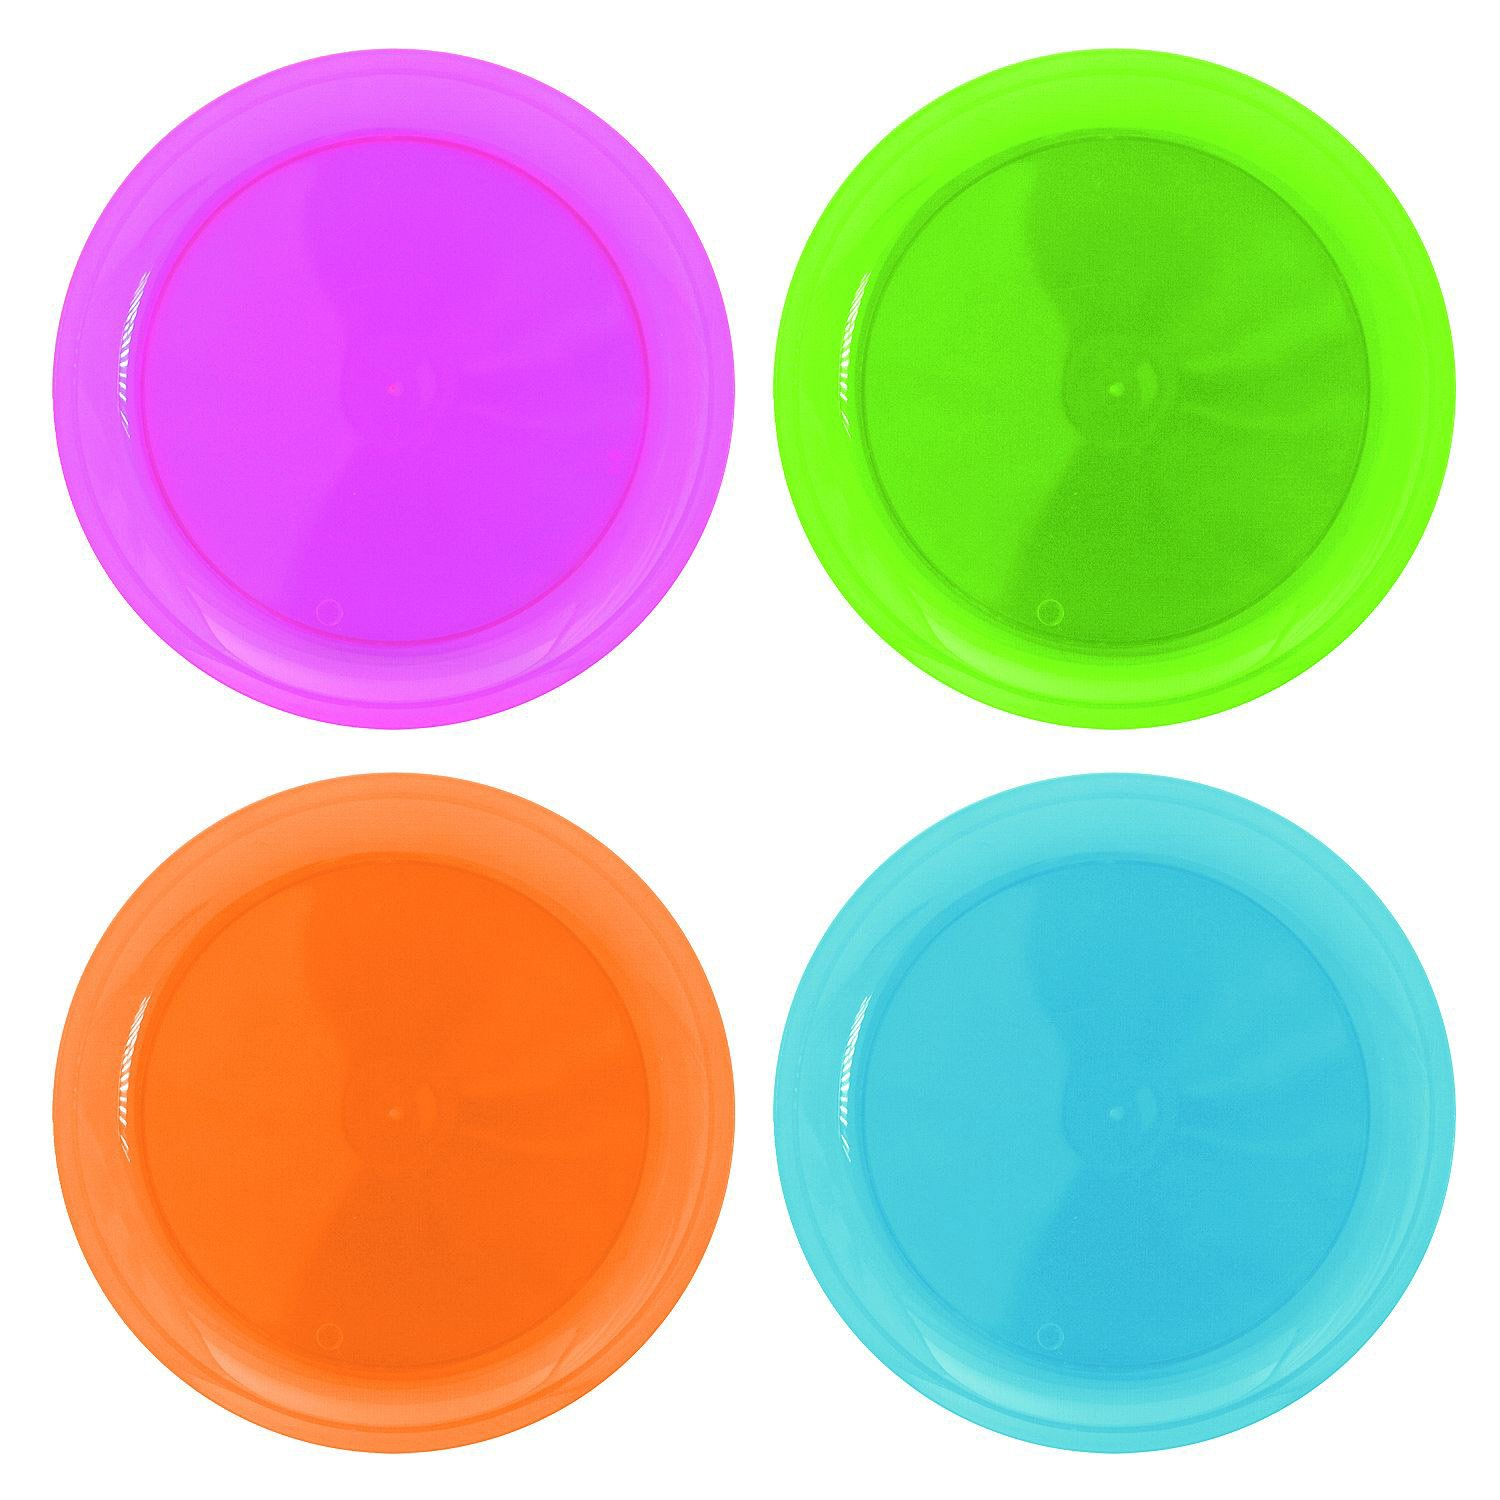 Amazon.com Party Essentials Hard Plastic 10.25-Inch Party/Dinner Plates Assorted Neon 20-Count Childrens Party Plates Kitchen \u0026 Dining  sc 1 st  Amazon.com & Amazon.com: Party Essentials Hard Plastic 10.25-Inch Party/Dinner ...